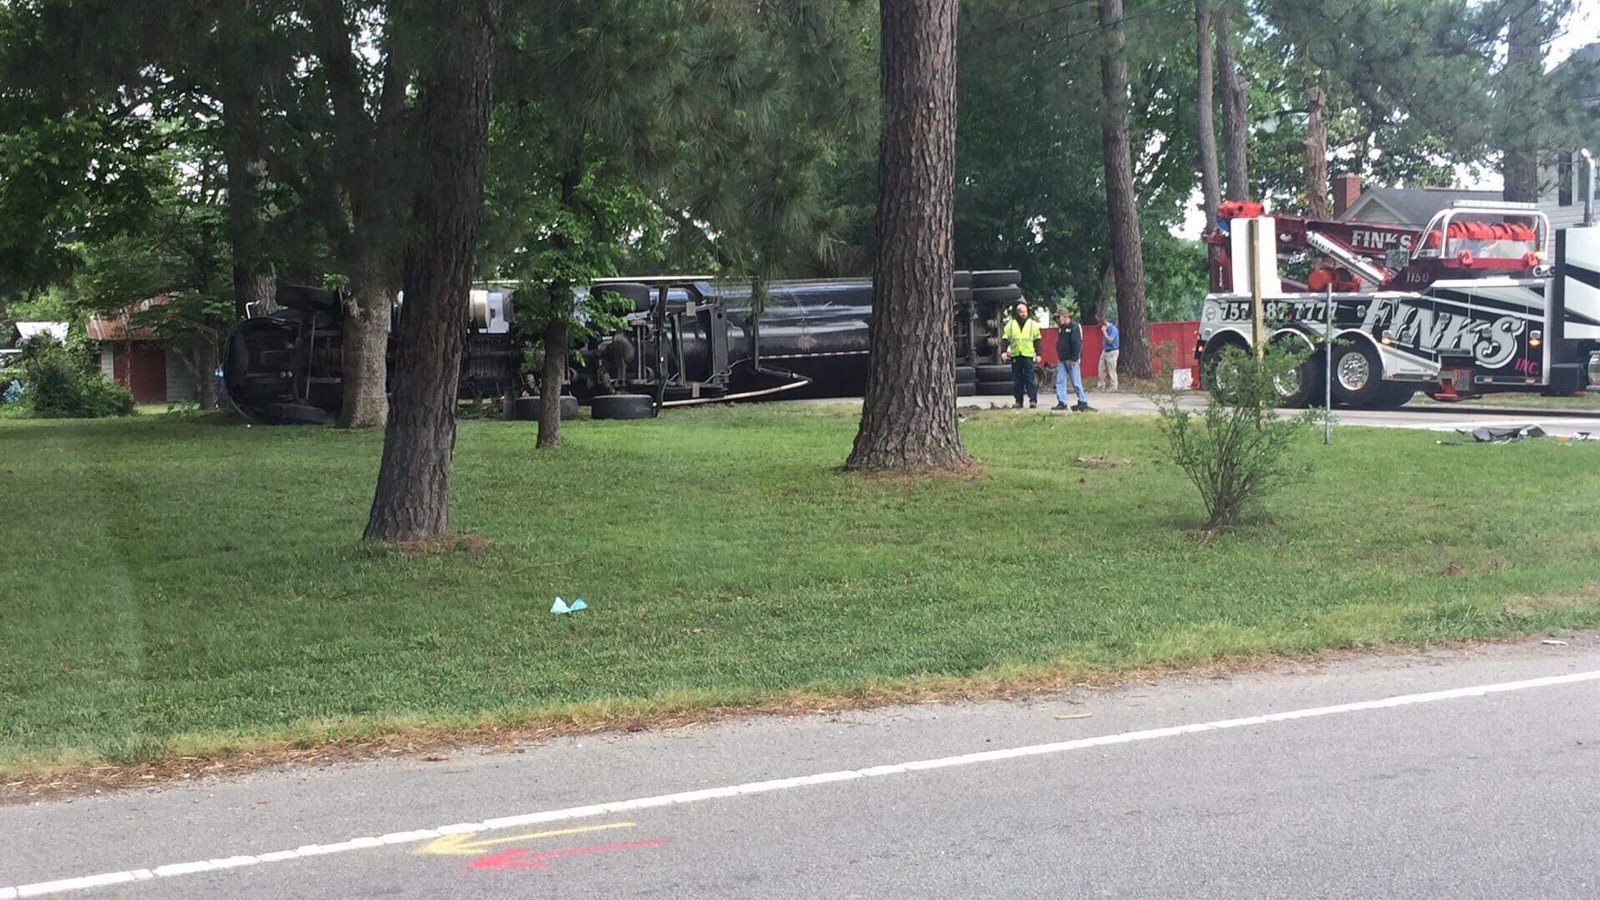 Report: 1 airlifted to hospital following crash in Gates County